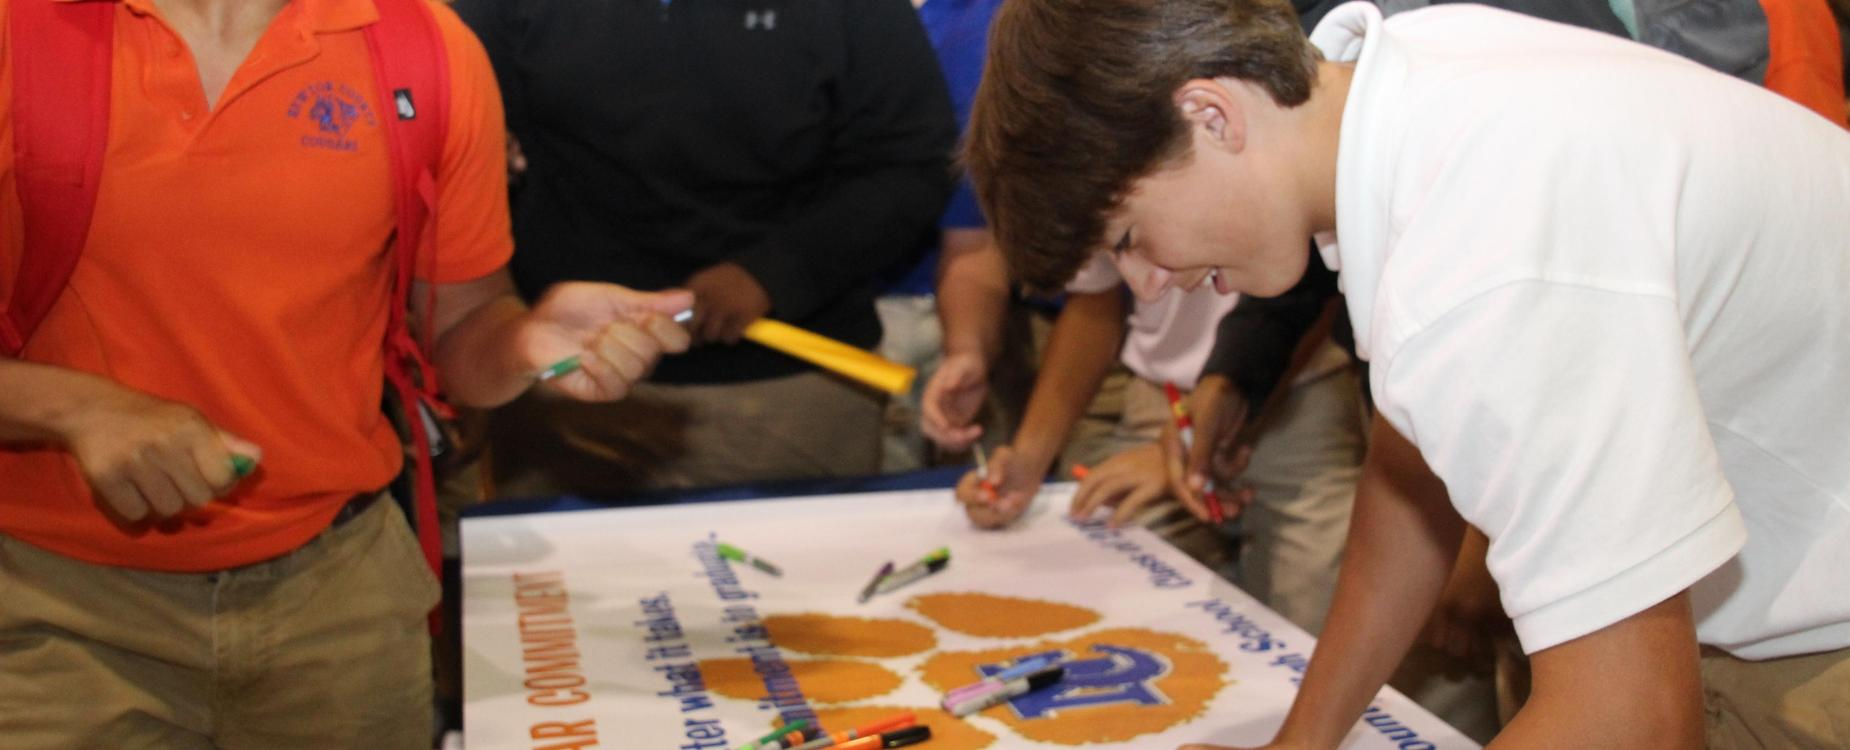 Student signing a poster